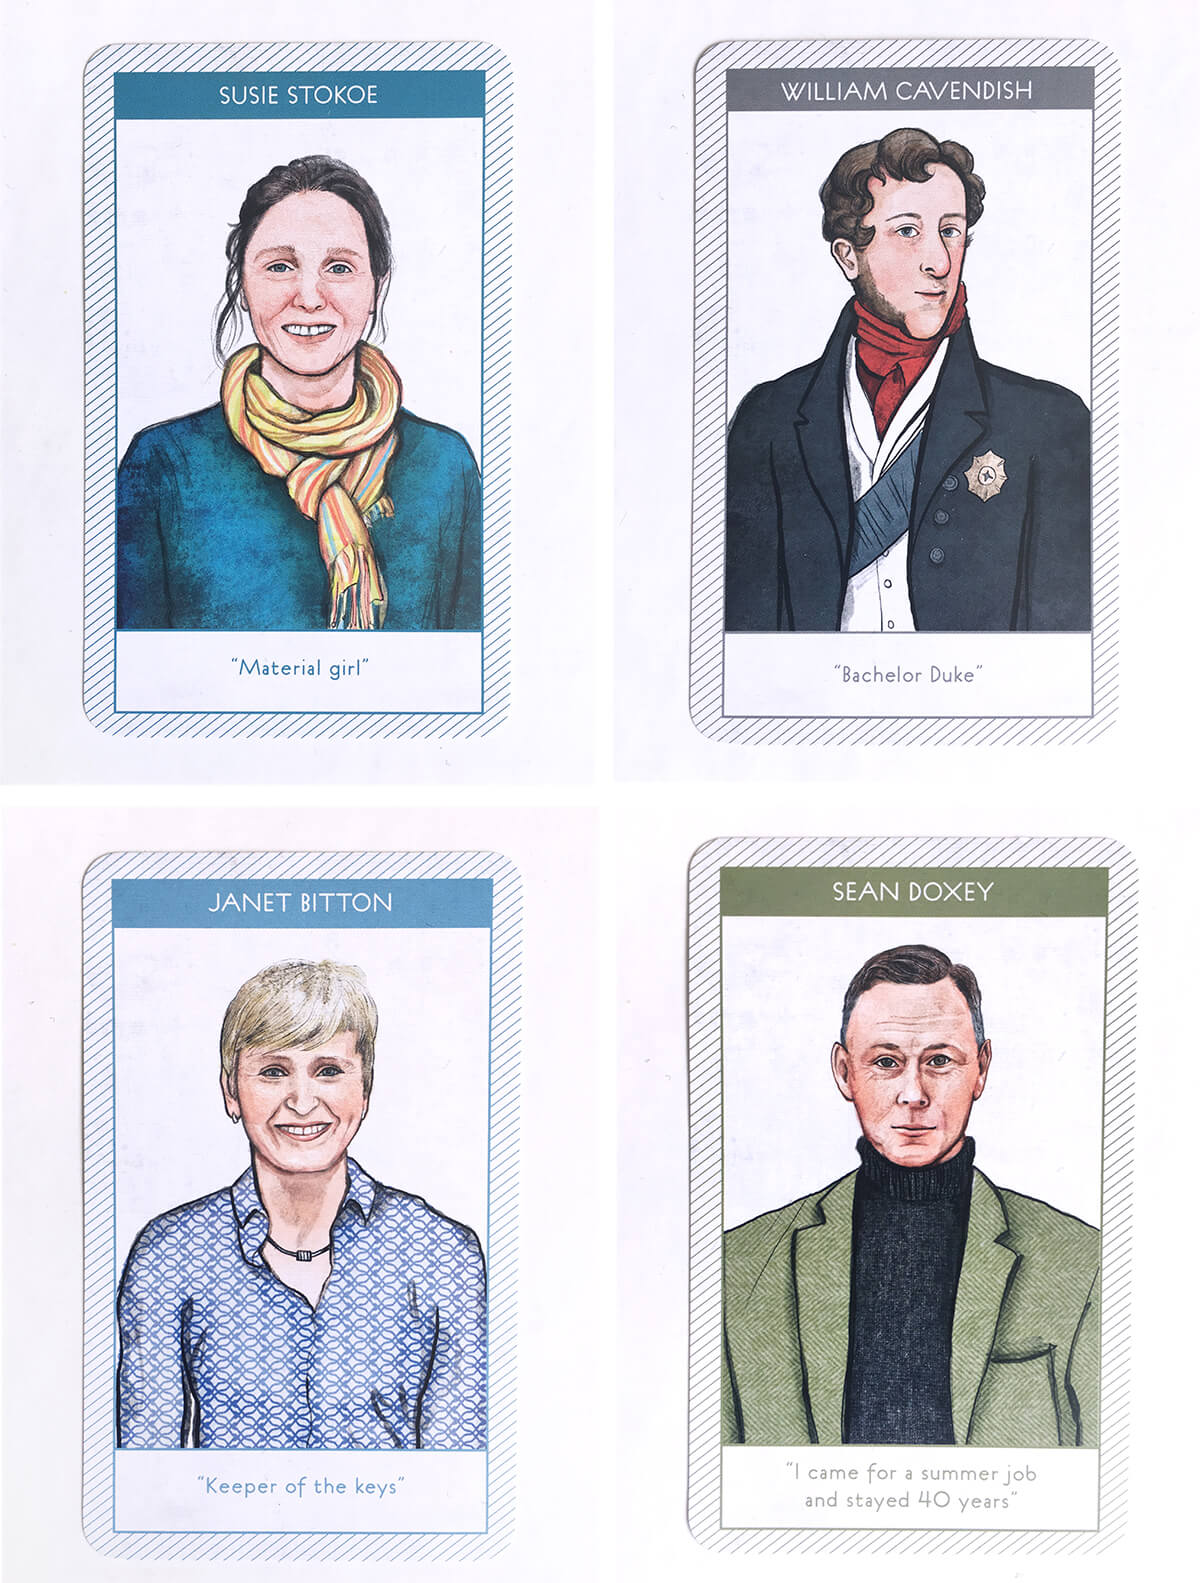 I then created card designs with the portraits on the front and important information on the back. The cards needed to be simple and informative to convey information clearly at a small scale.